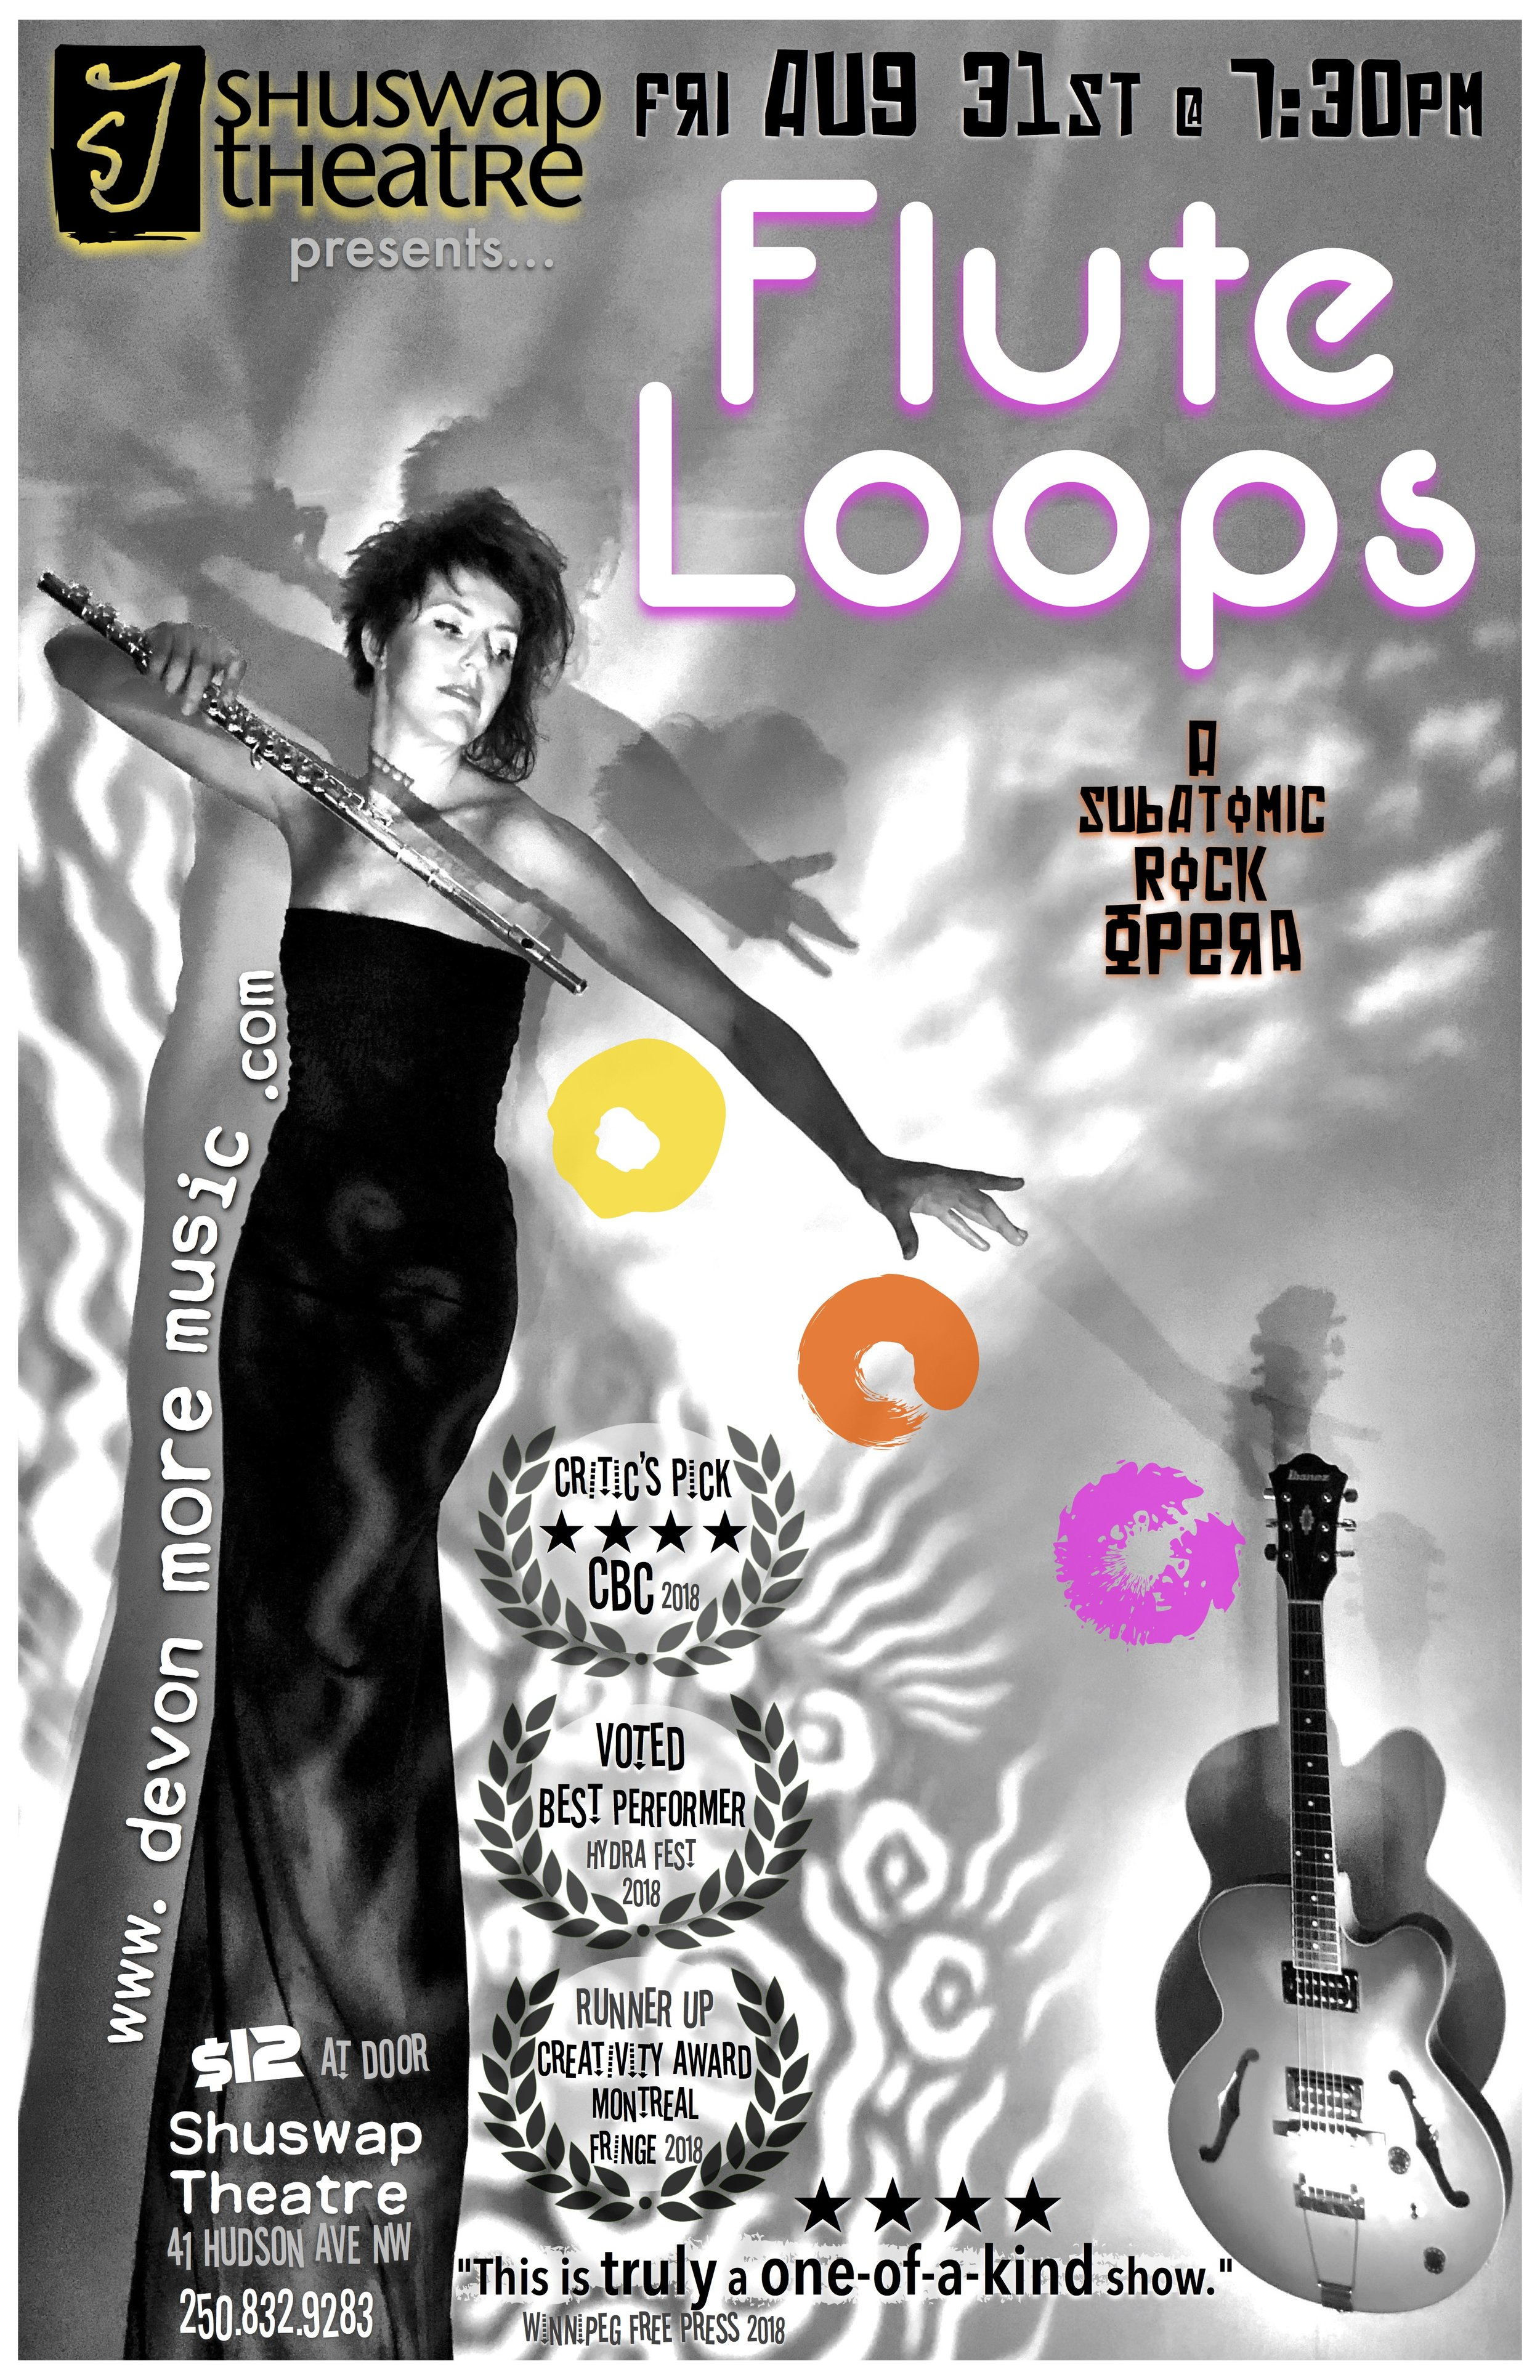 Flute Loops was a CBC Critics' Pick in Winnipeg, and was named Runner Up for the Creativity Award at the Montreal Fringe. In her role, Devon More was voted Best Performer at the 2018 Hydra Festival in Kamloops.